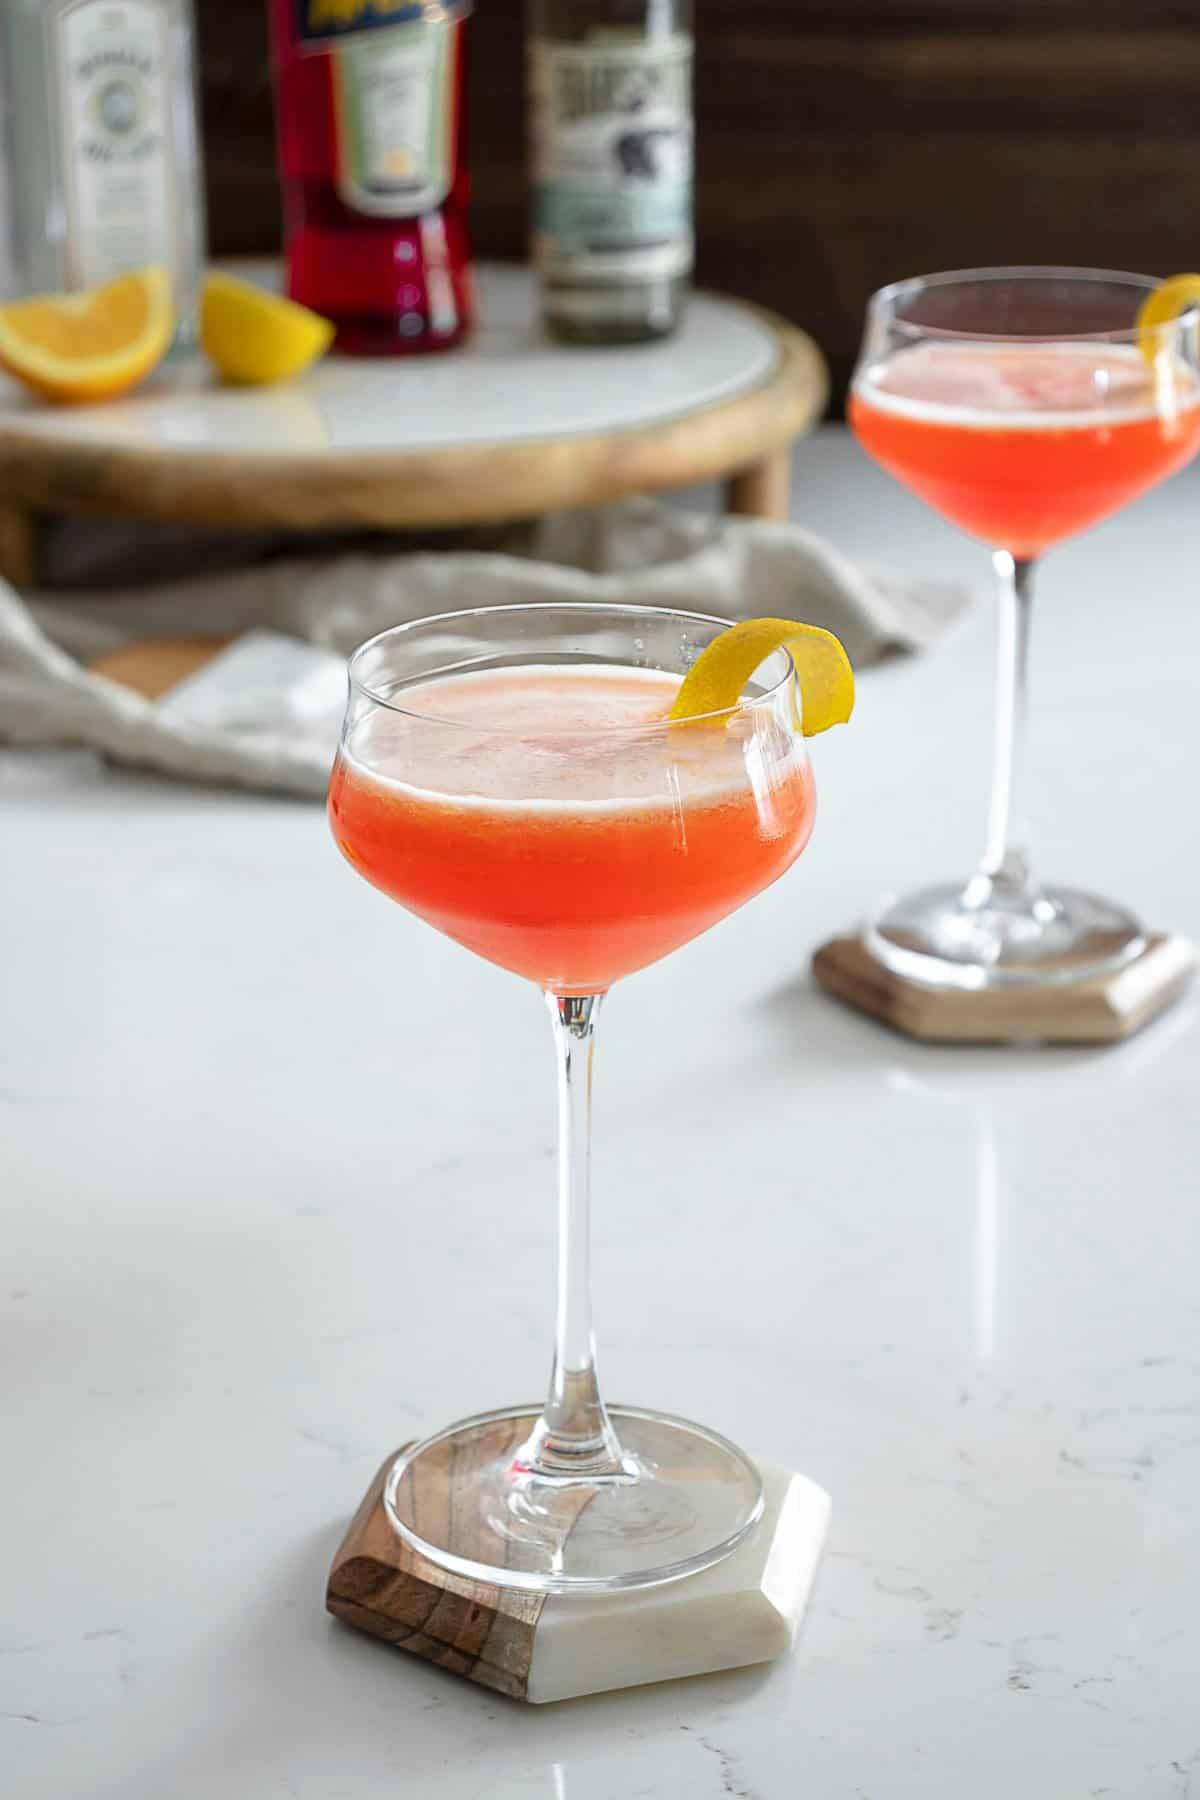 Aperol gin sour on table with lemon peel.